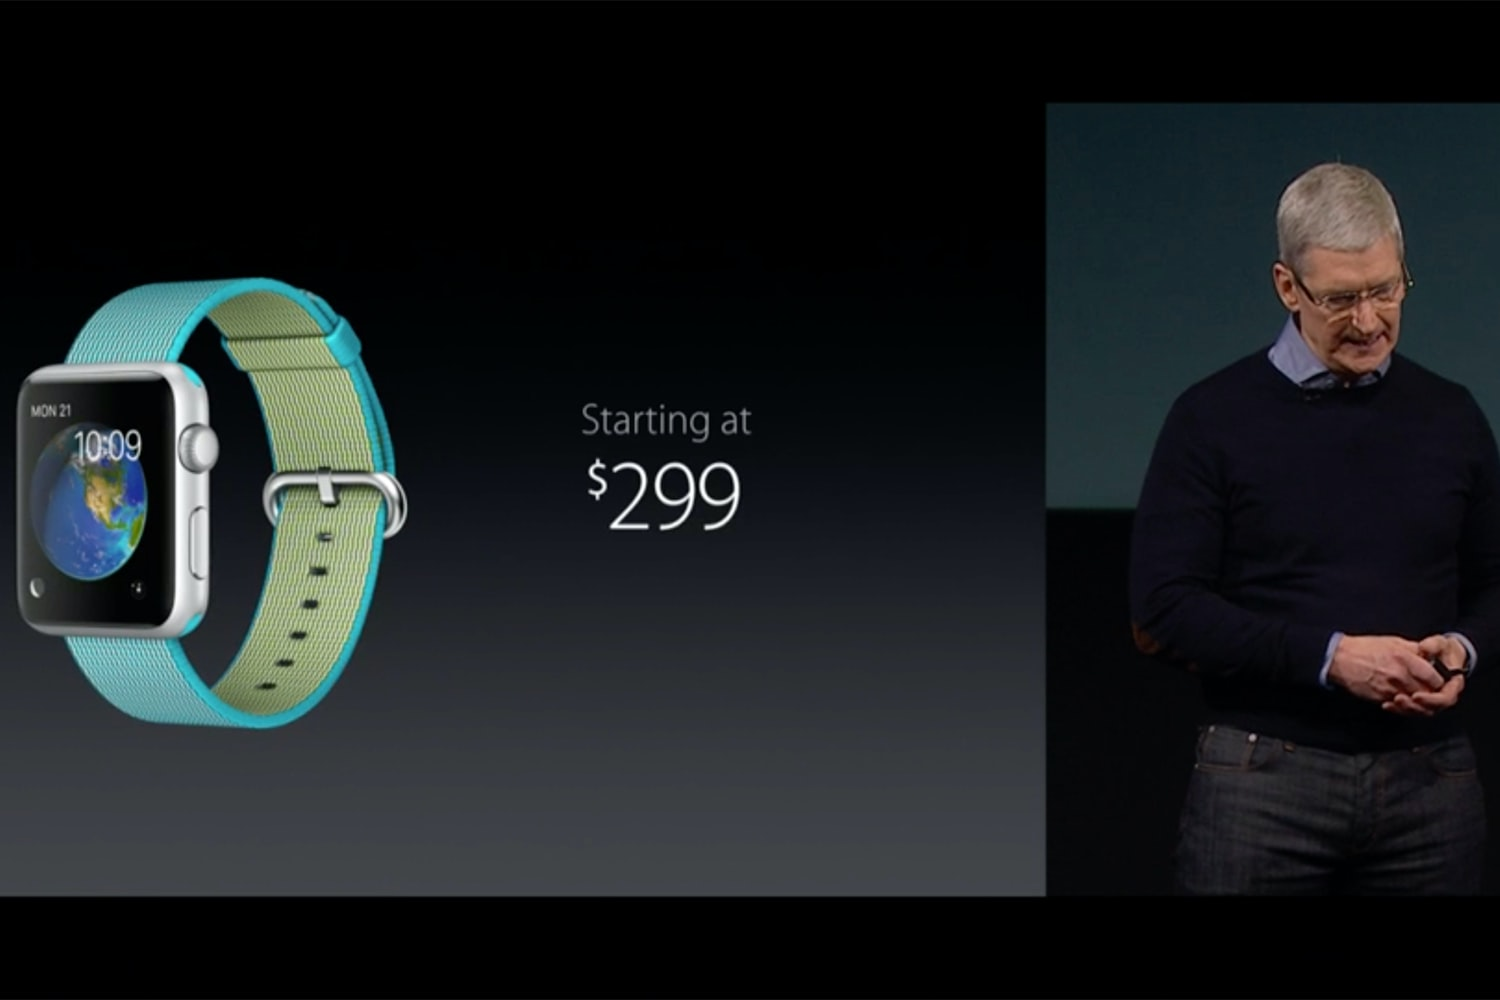 apple watch $299 Apple Announces New Apple Watch Straps, Drop In Starting Price At 'Let Us Loop You In' Event Apple Announces New Apple Watch Straps, Drop In Starting Price At 'Let Us Loop You In' Event price